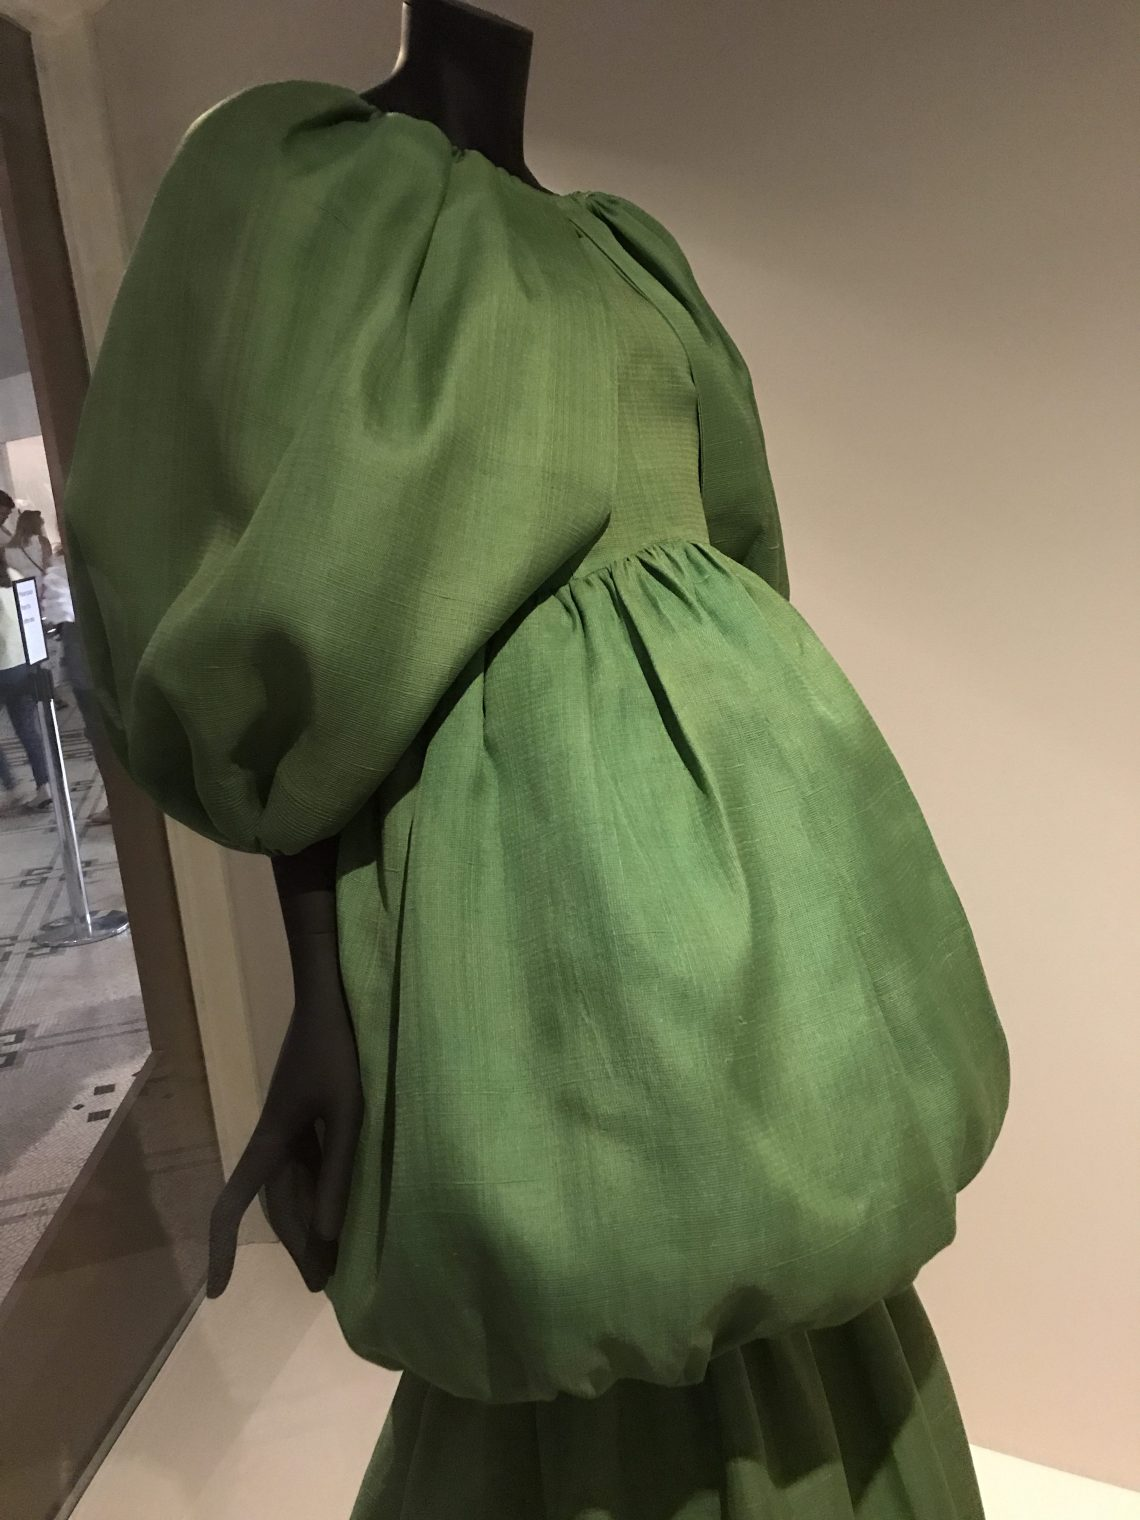 Balenciaga green balloon dress